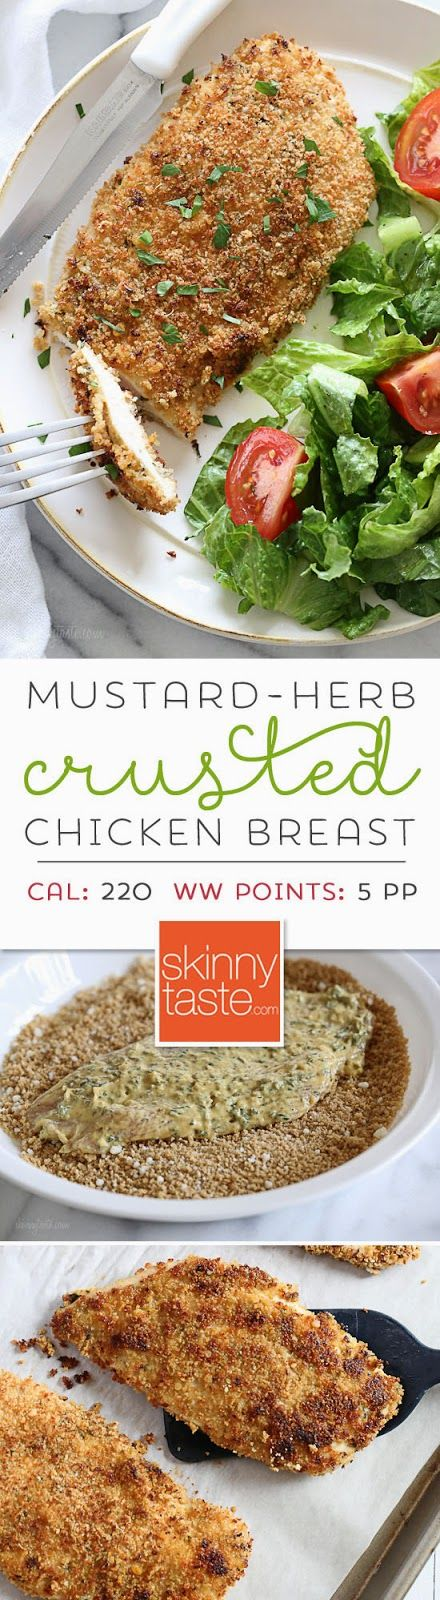 ... on Pinterest | Chicken, Parmesan Crusted Chicken and Chicken Breasts